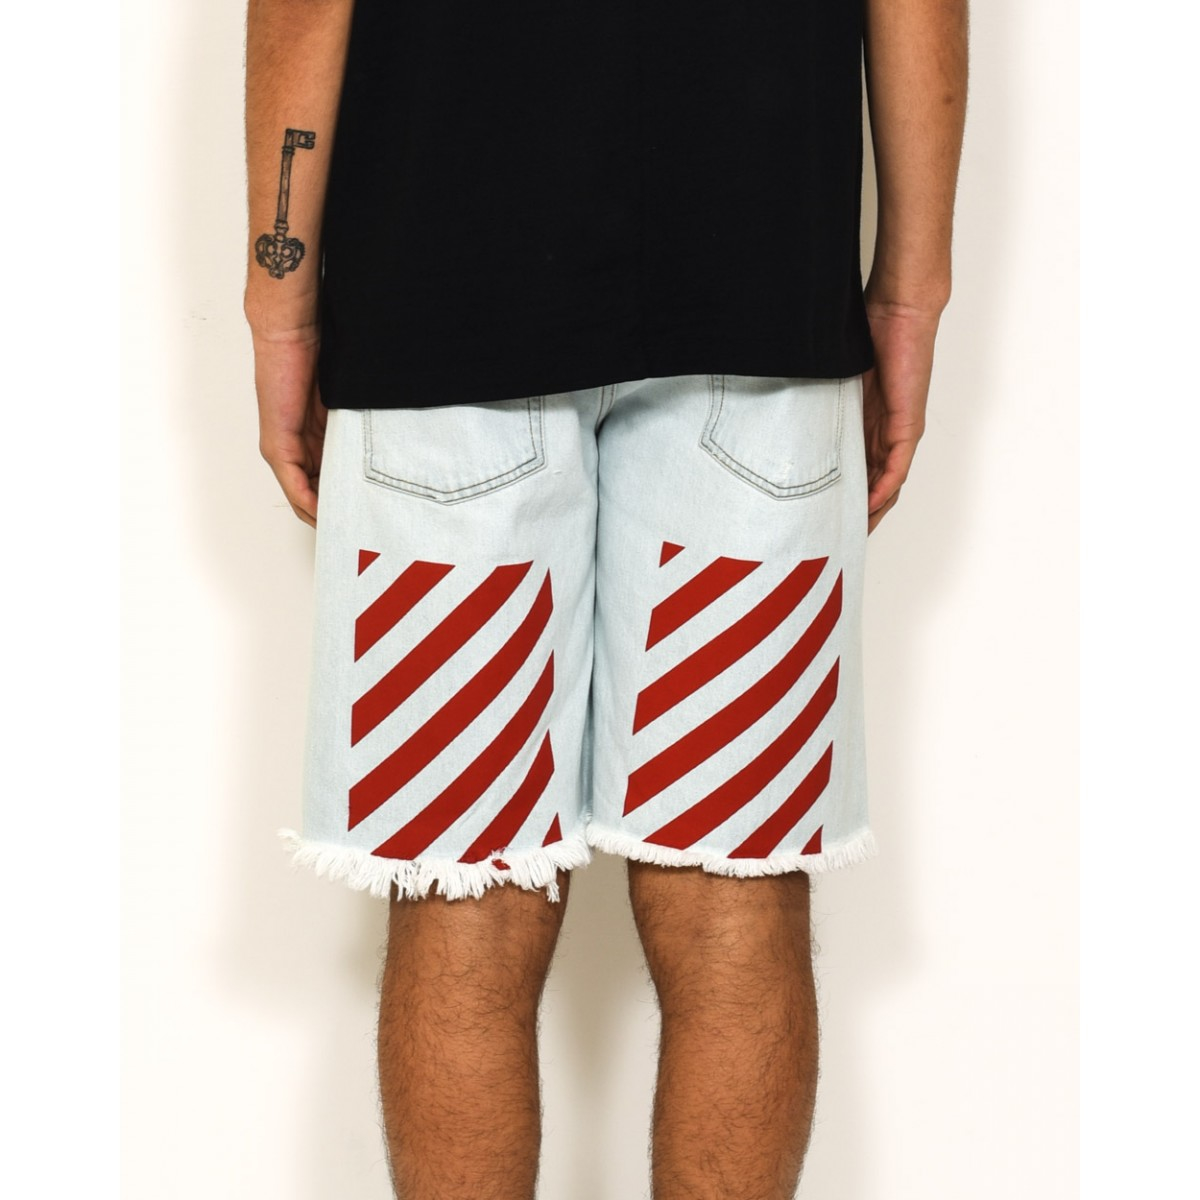 Off-white c/o virgil abloh &quoteagle&quot Short Jeans Five Pockets in